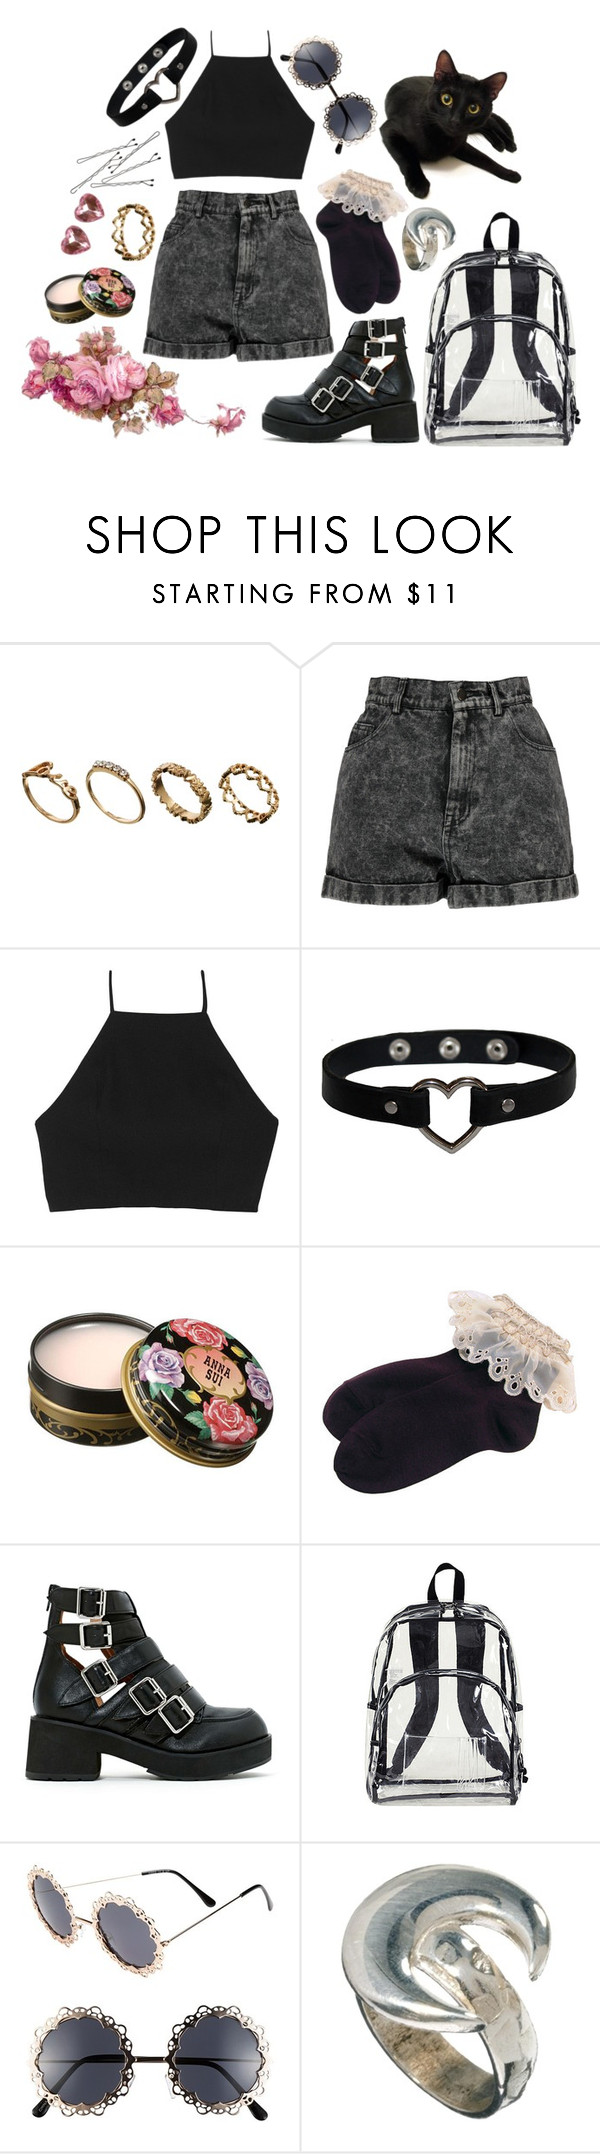 """""""dark nymphet"""" by pastelmuffin ❤ liked on Polyvore featuring ASOS, Boohoo, rag & bone, BOBBY, Anna Sui, Fantas-Eyes, Bloody Mary Metal, Full Tilt, croptop and 90s"""